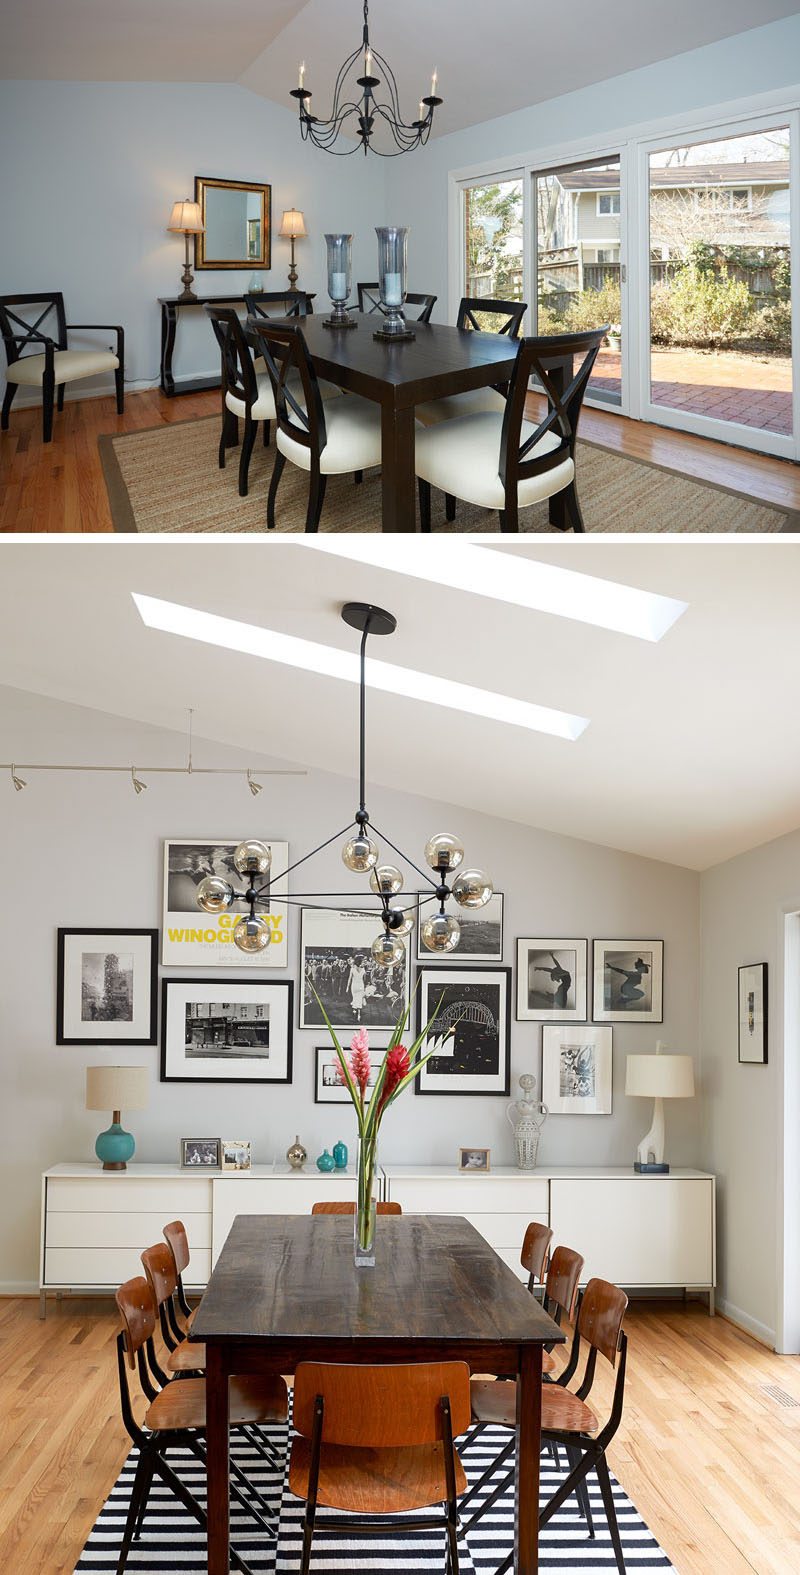 BEFORE & AFTER - In this updated dining room, a black and white striped rug grounds the wood dining table and chairs in this mid-century style dining room. A long, white buffet provides essential storage for dinnerware, utensils and anything you might need for entertaining, and a large picture wall perfectly displays various photographs.